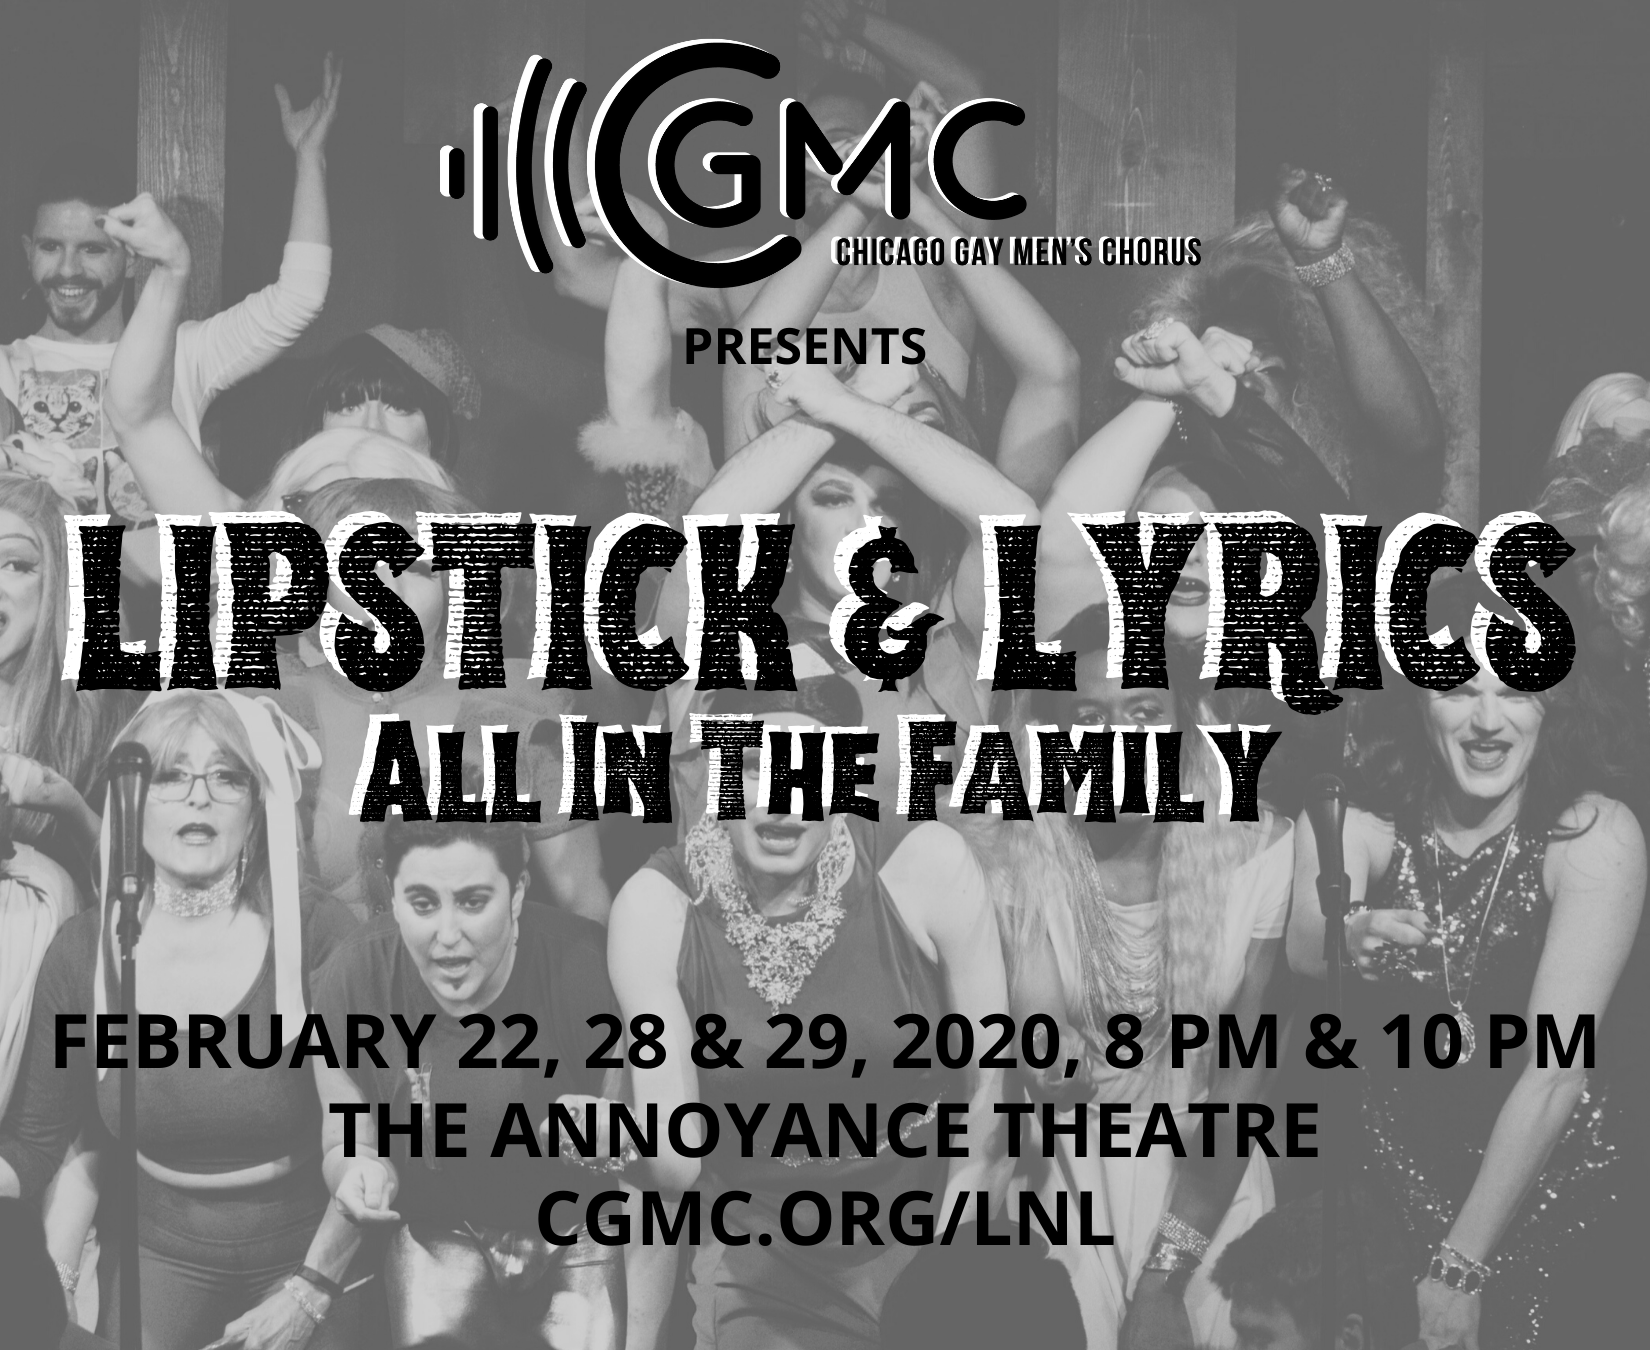 Lipstick & Lyrics: All In The Family @ The Annoyance Theatre